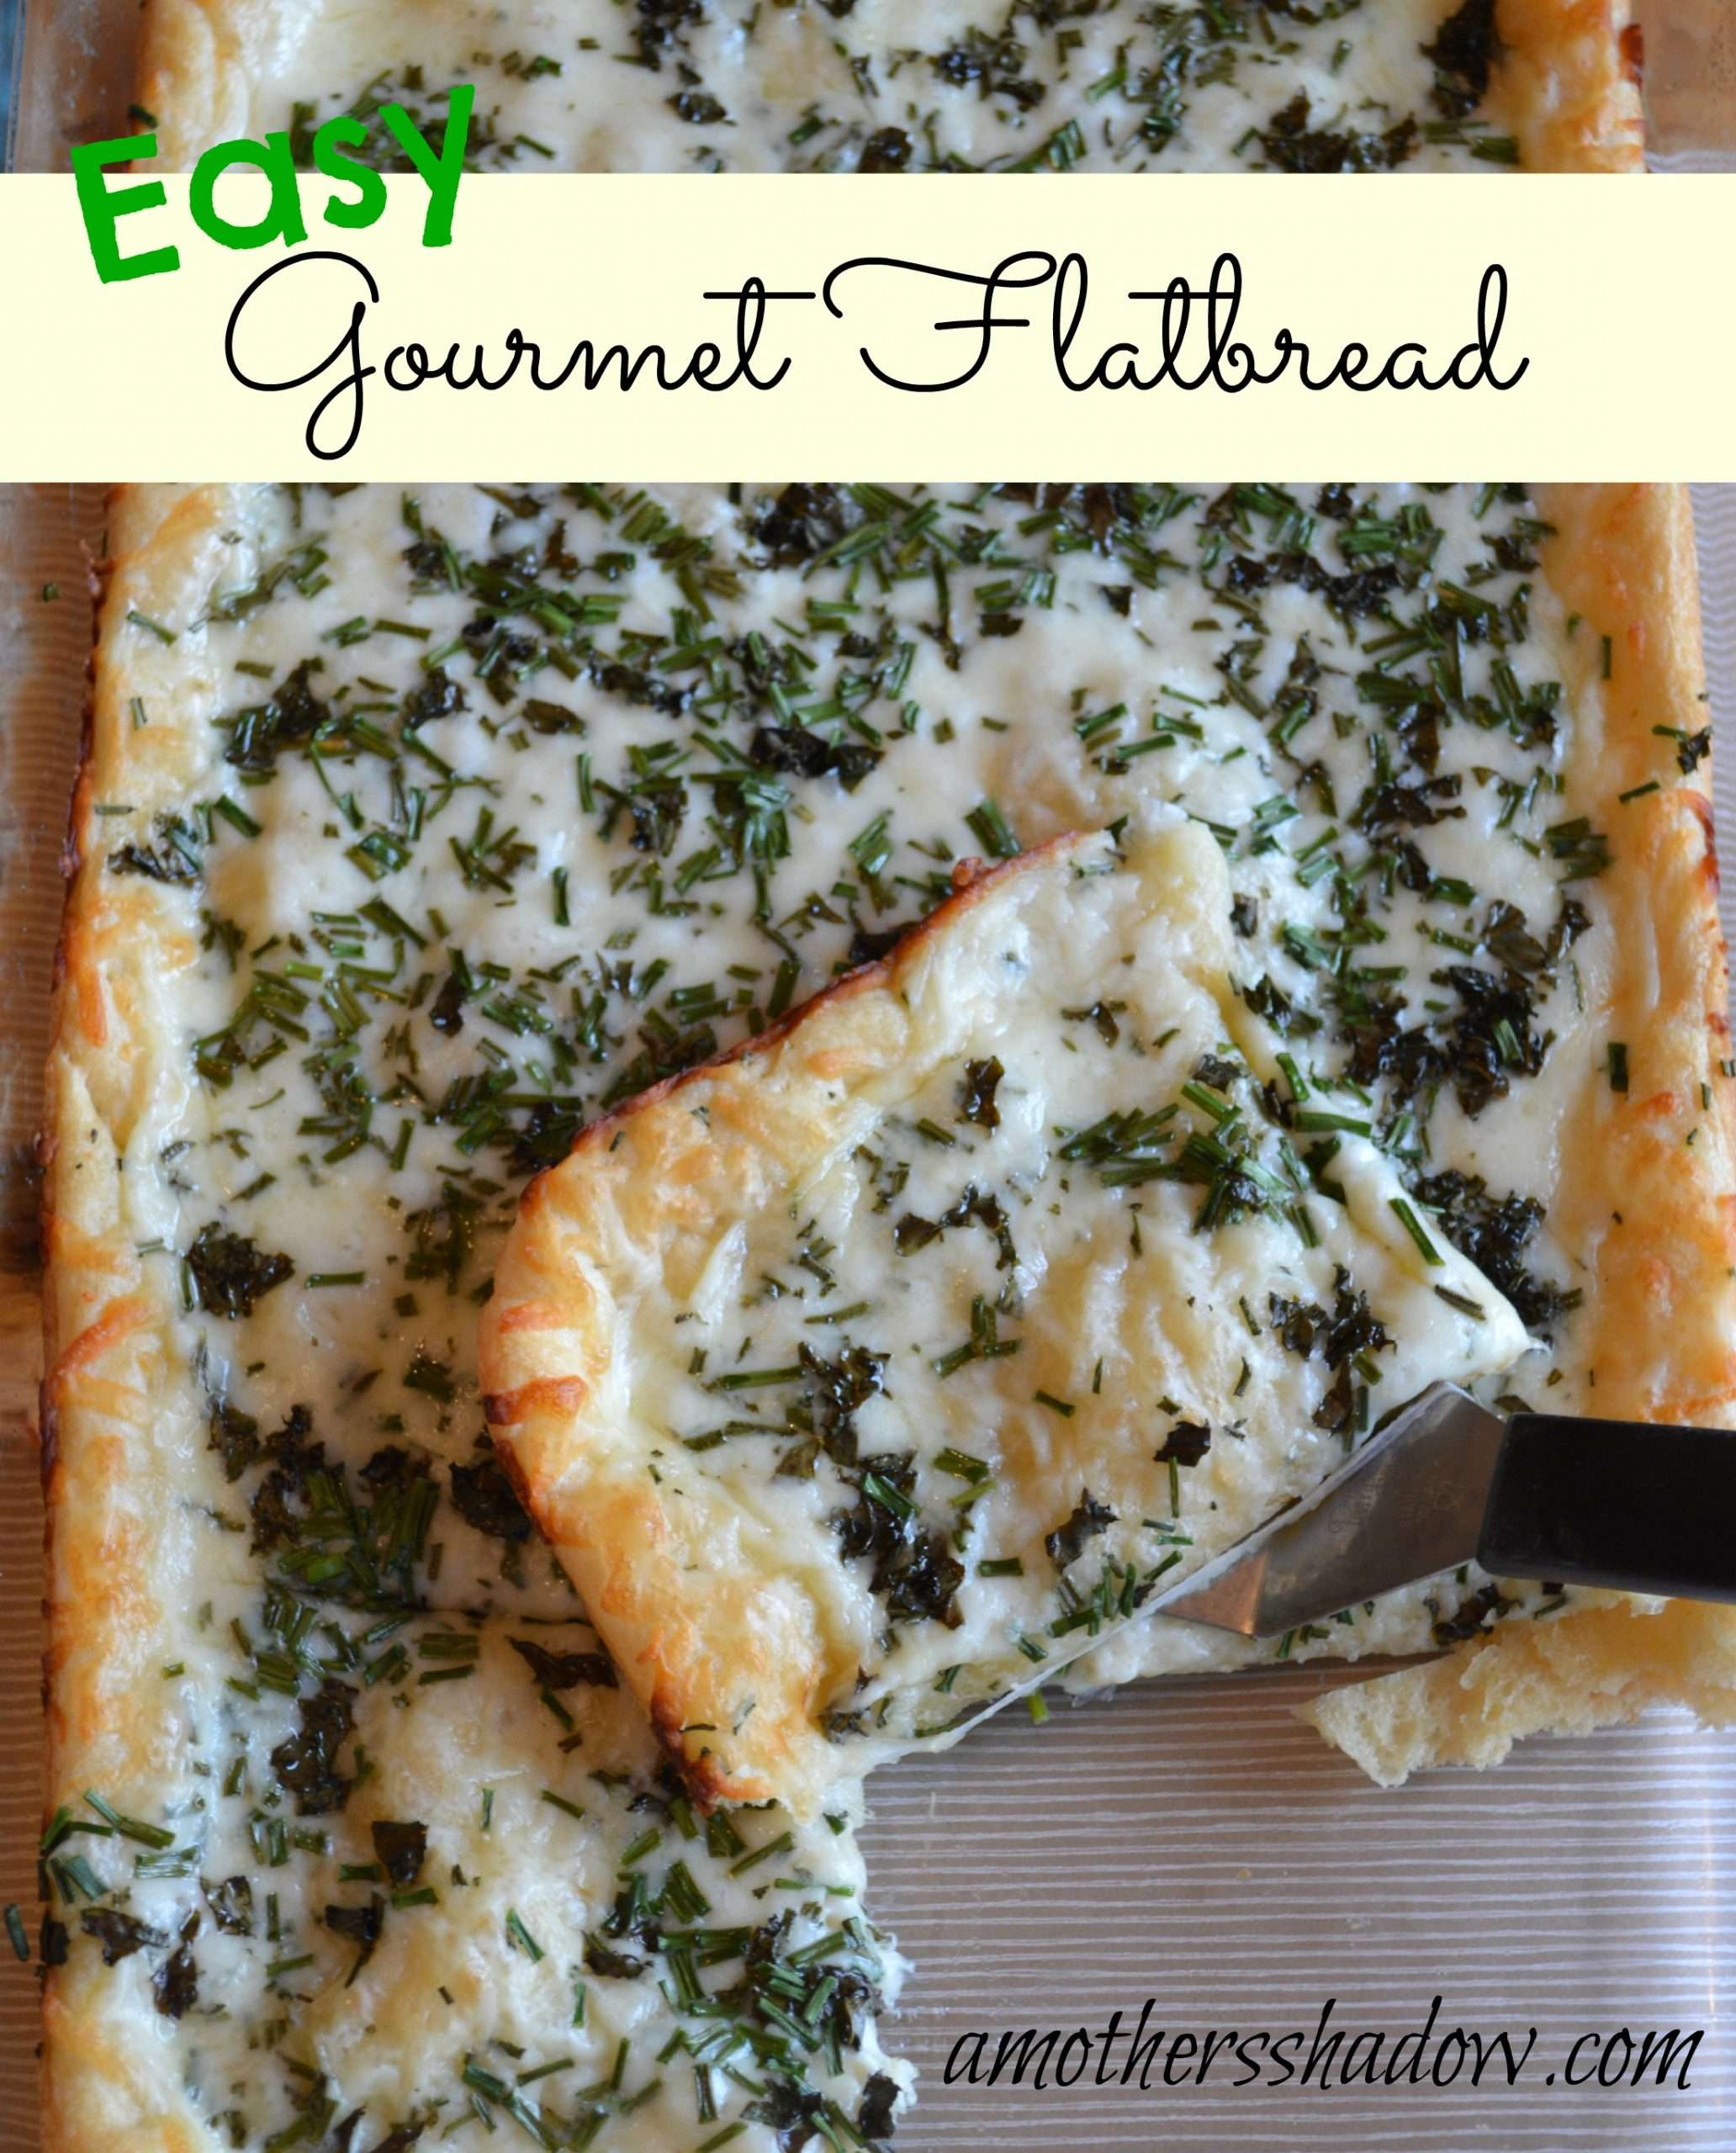 Easy Gourmet Flat Bread